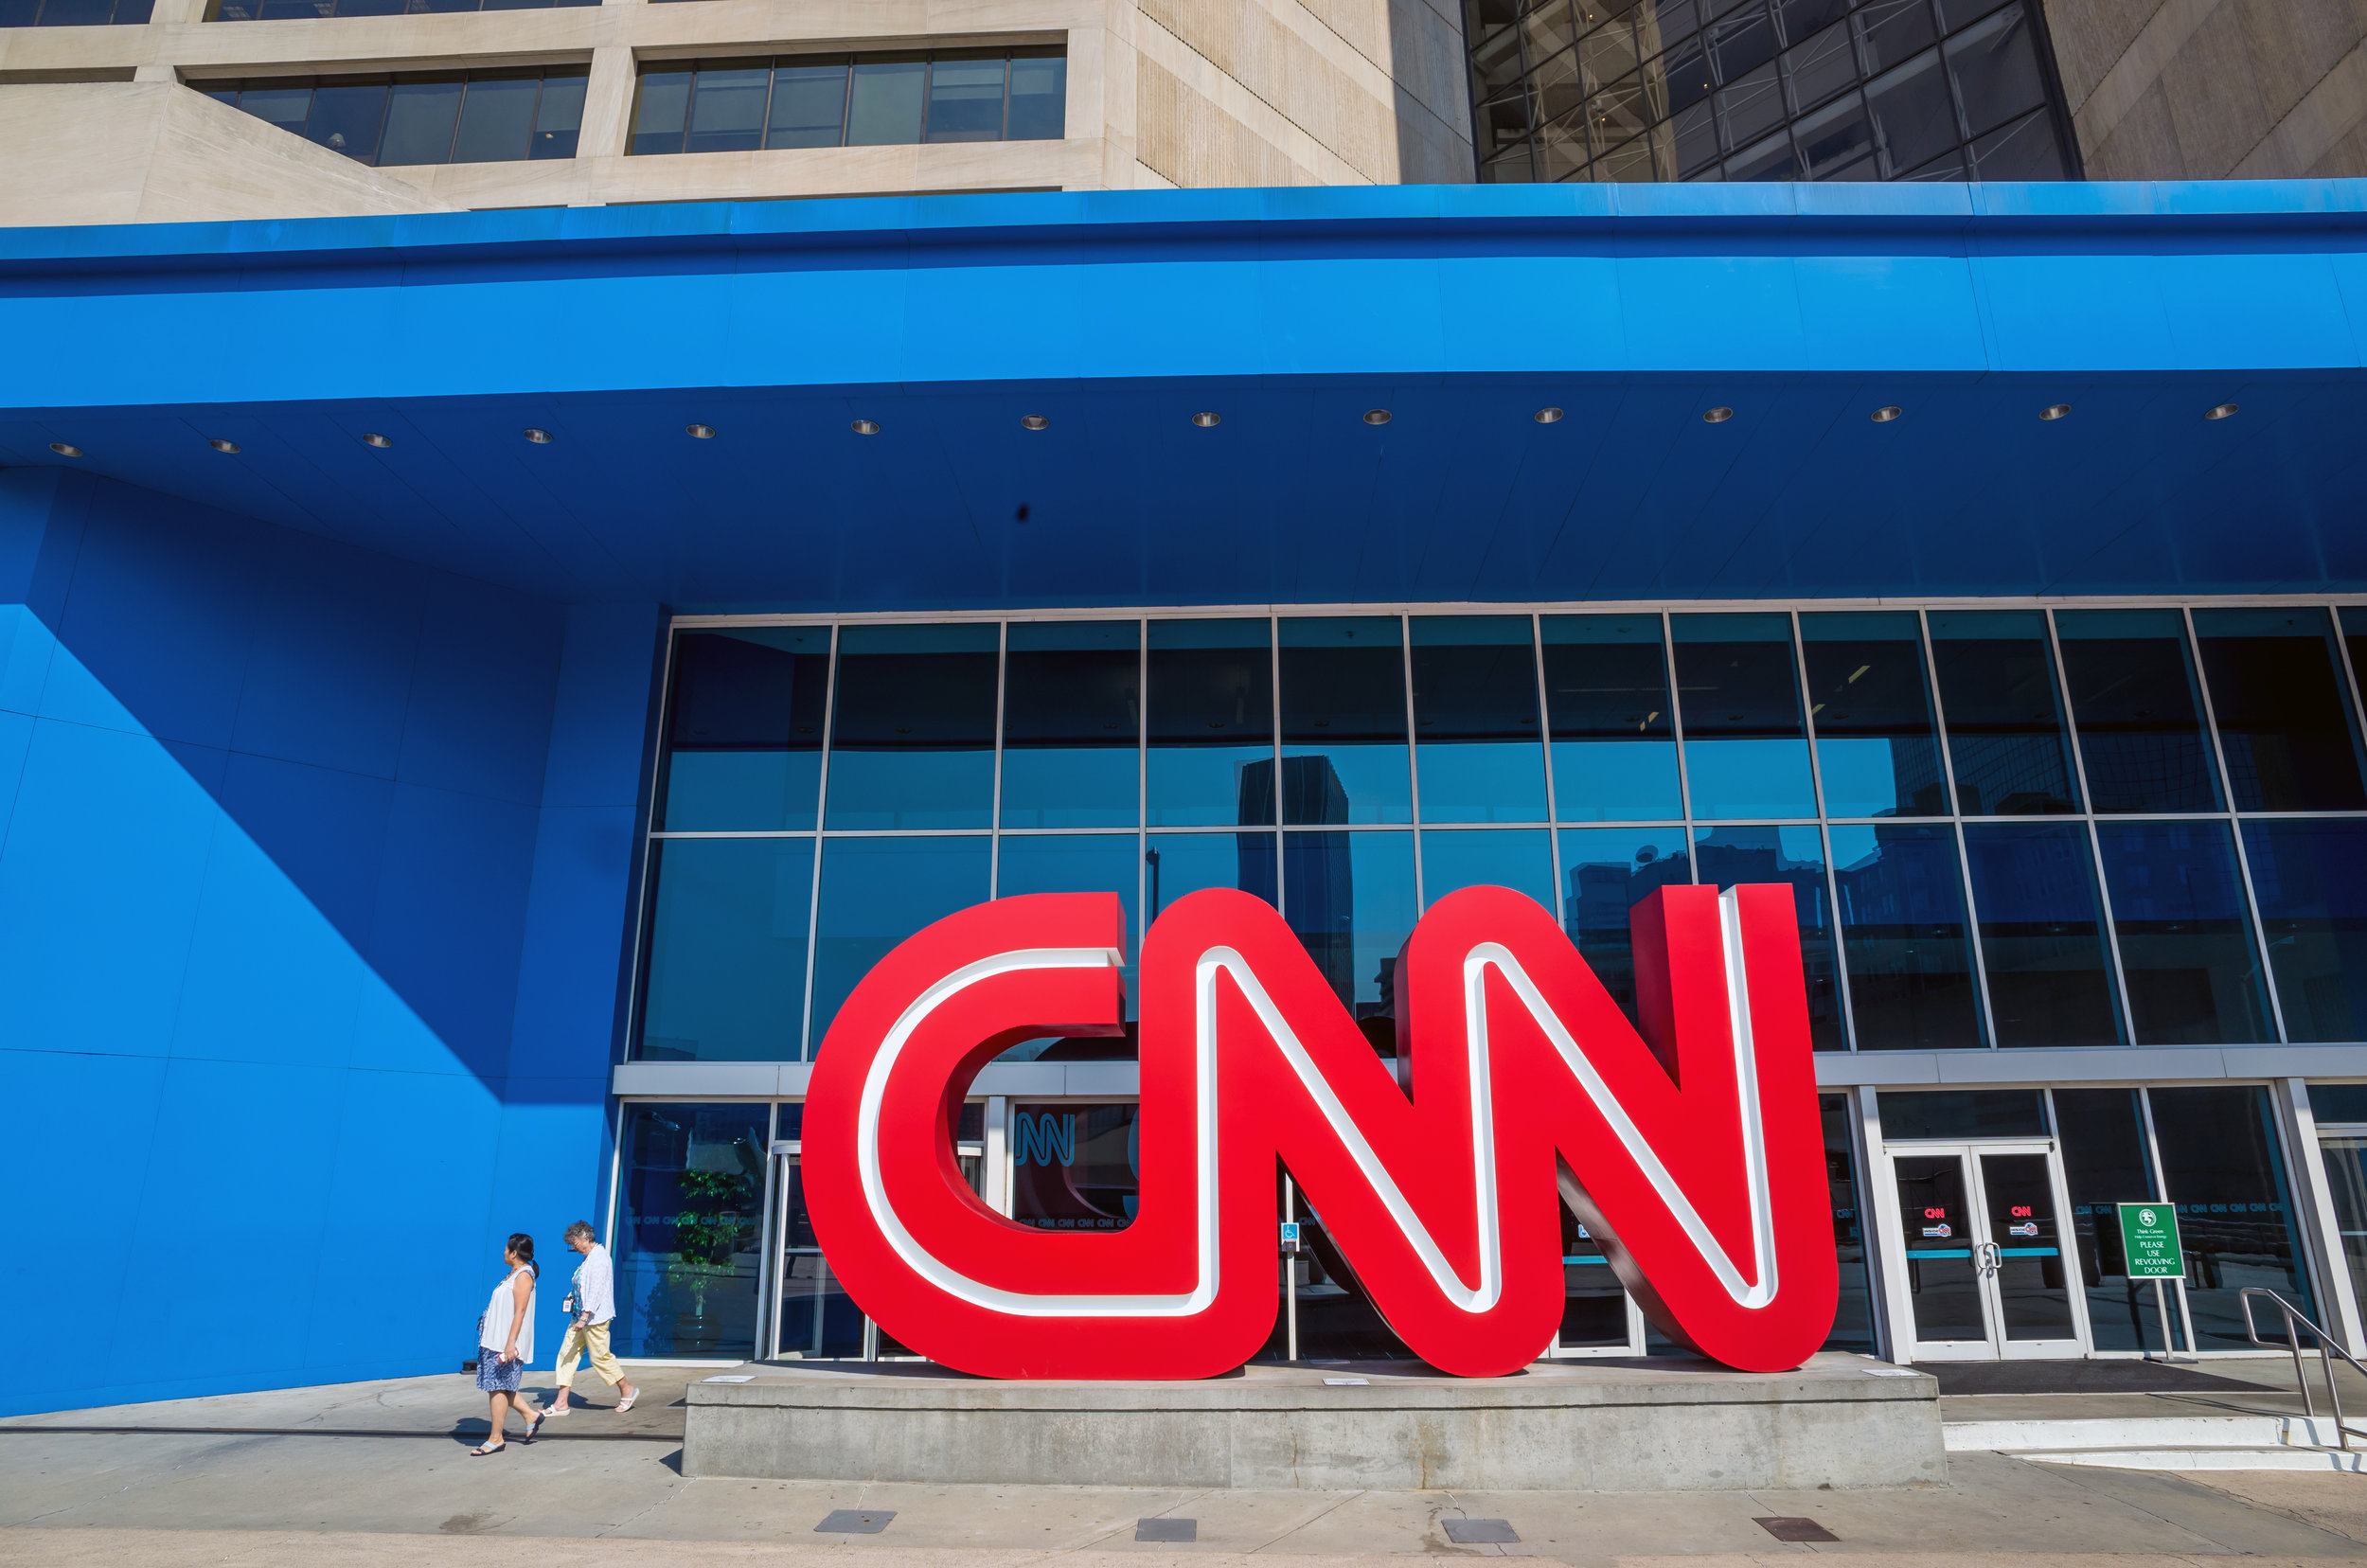 The CNN Center - Atlanta, GAAstro installed Access Control and CCTV systems keep this world renowned news complex safe and secure. We also provide longterm maintenance and support for all of CNN's security equipment and systems.